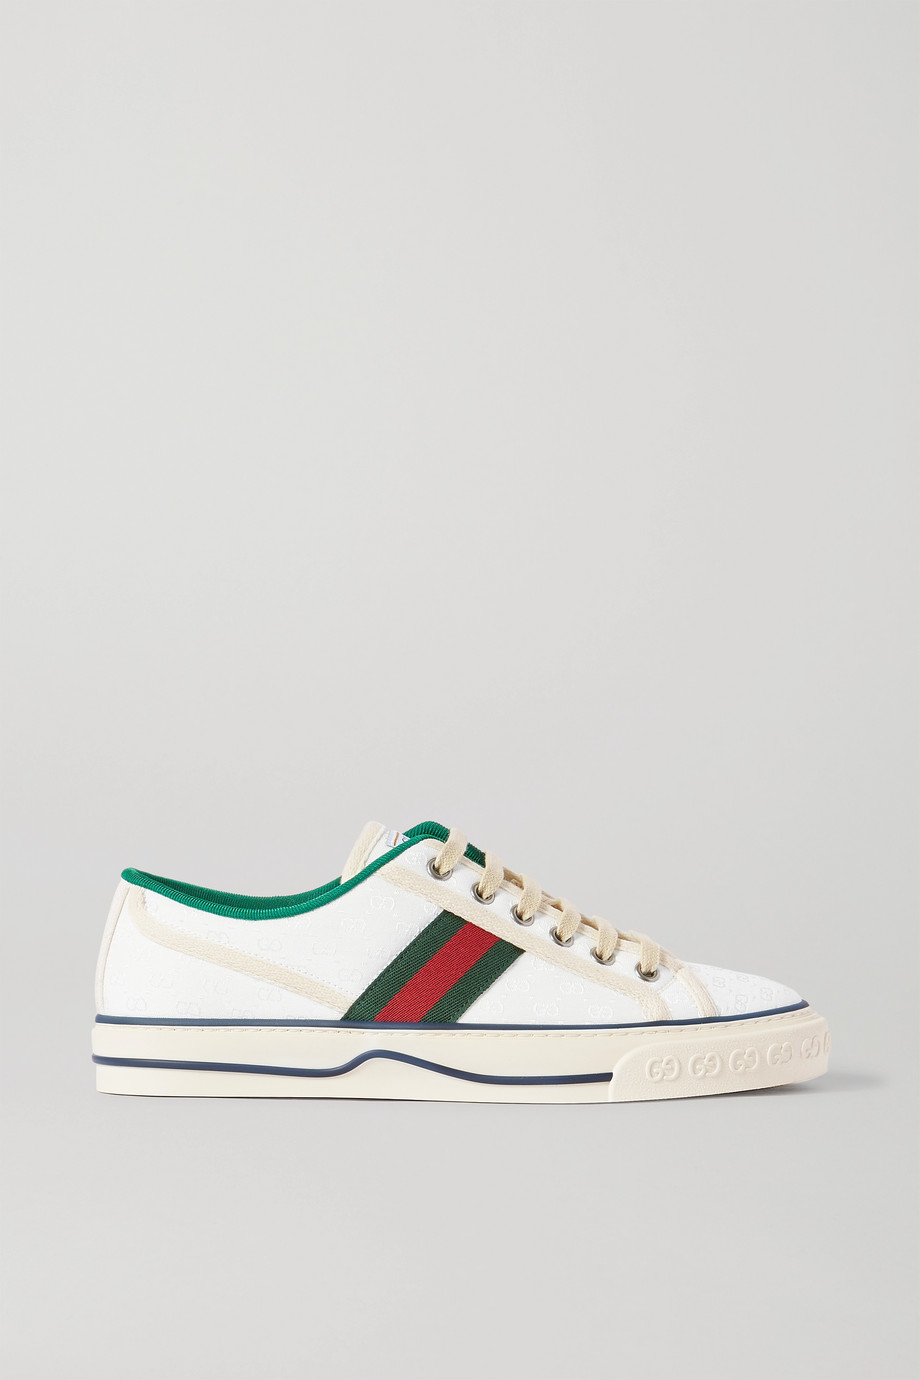 Gucci Tennis 1997 webbing-trimmed logo-embroidered canvas sneakers